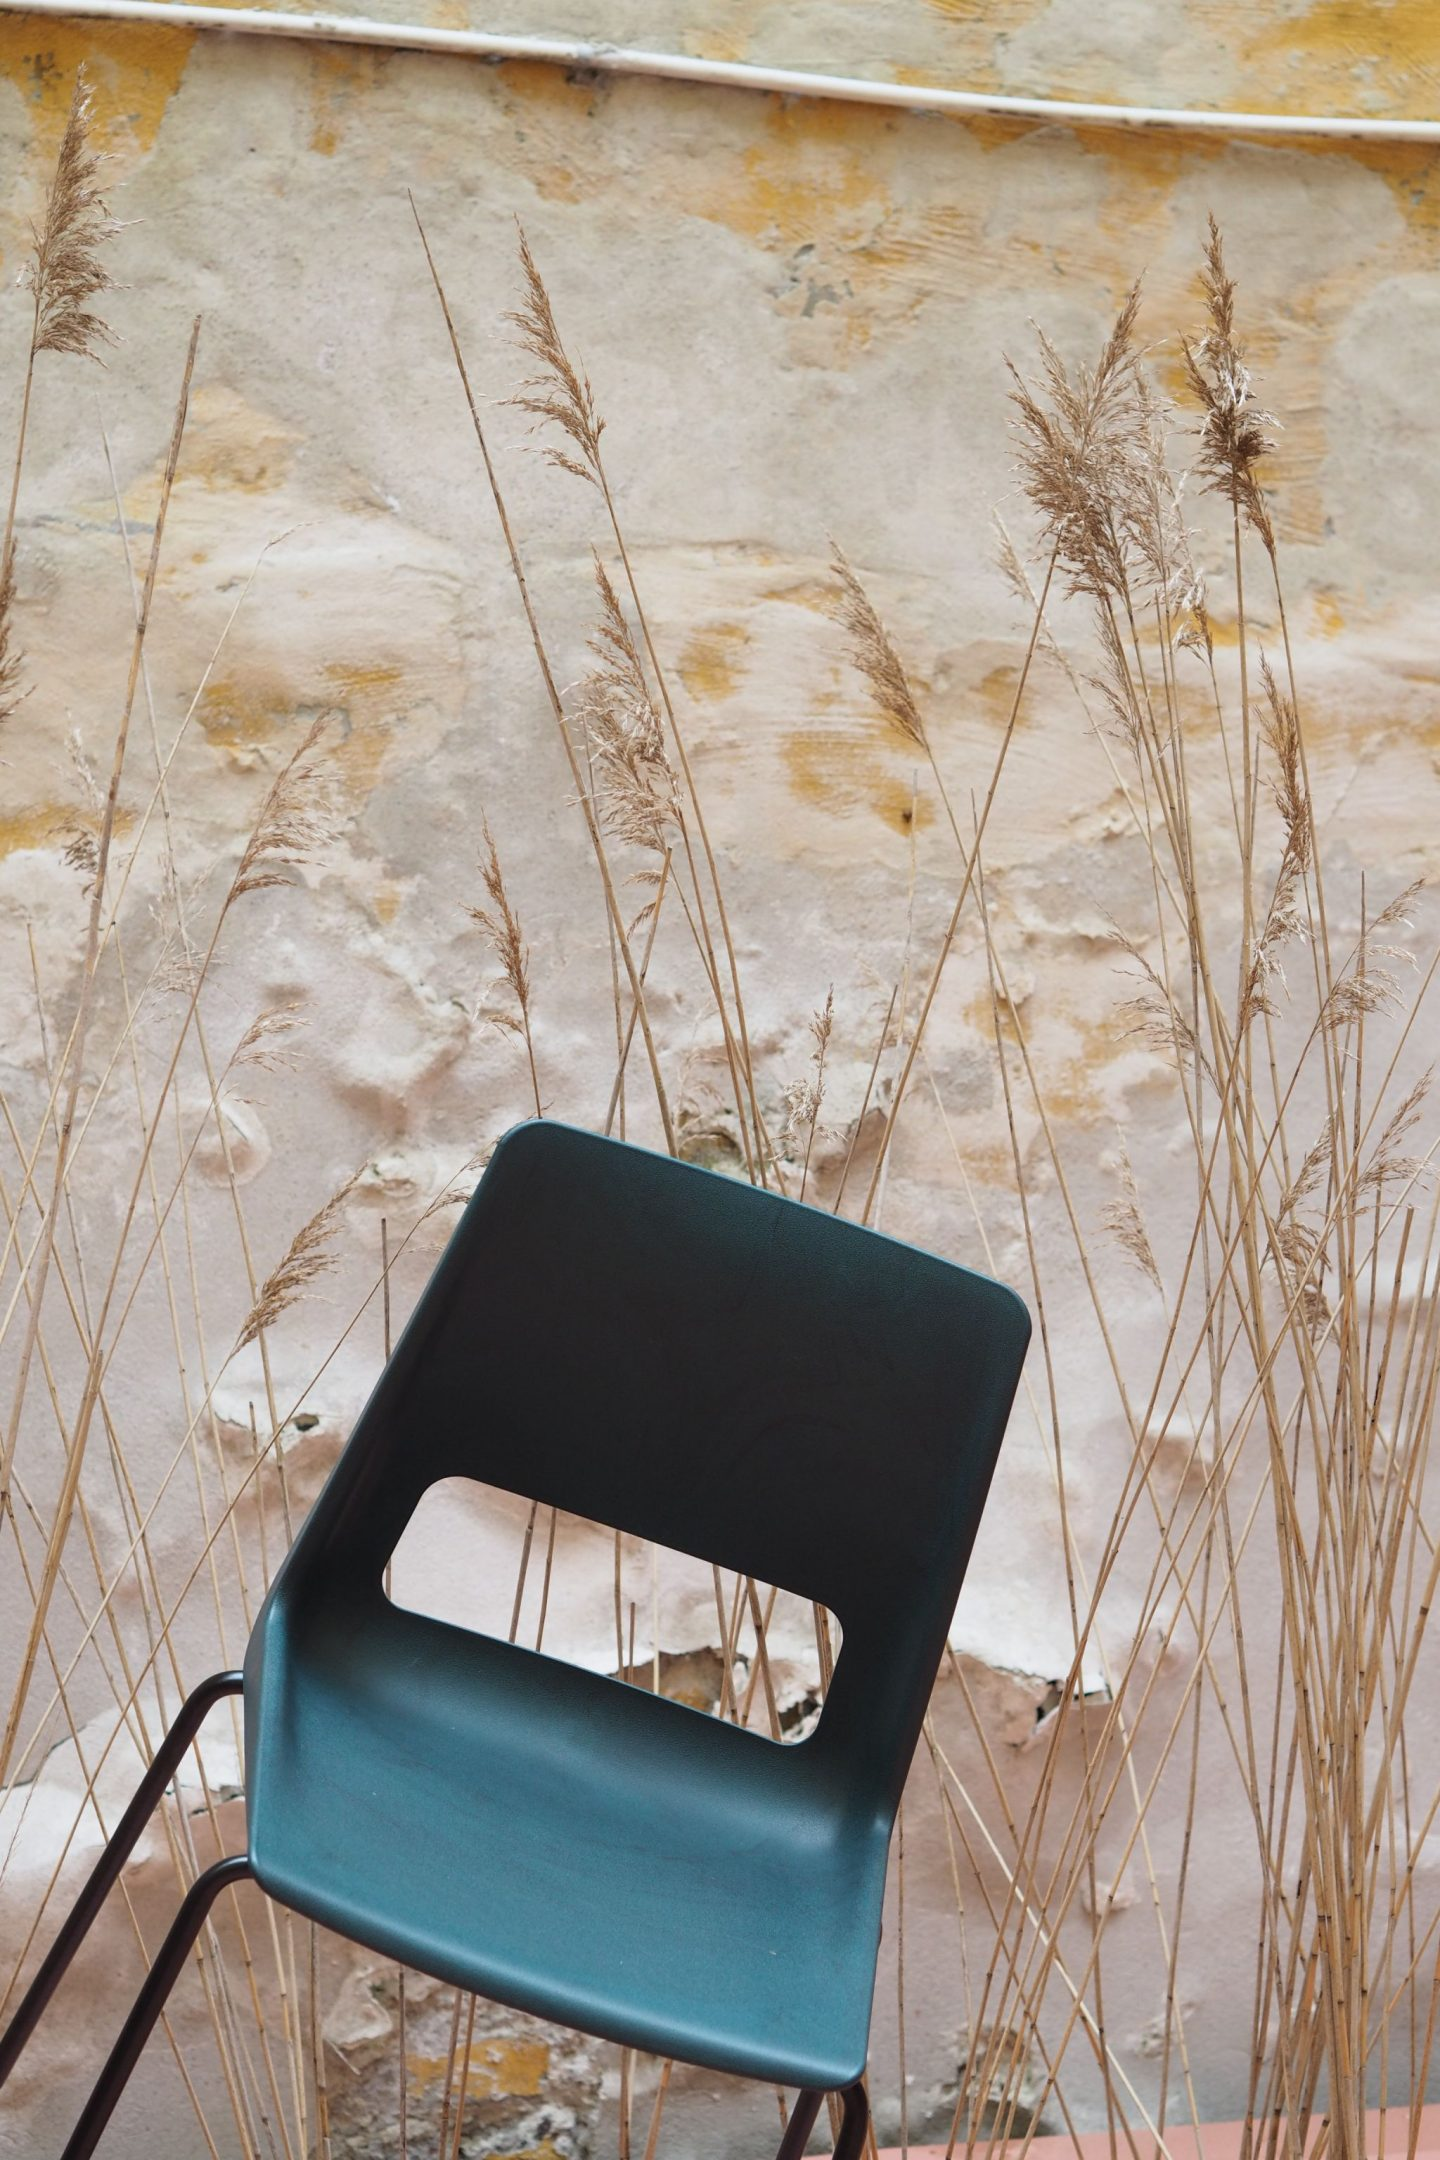 Copenhagen's 3 days of design event, Valrygg, chair, Hello Peagreen